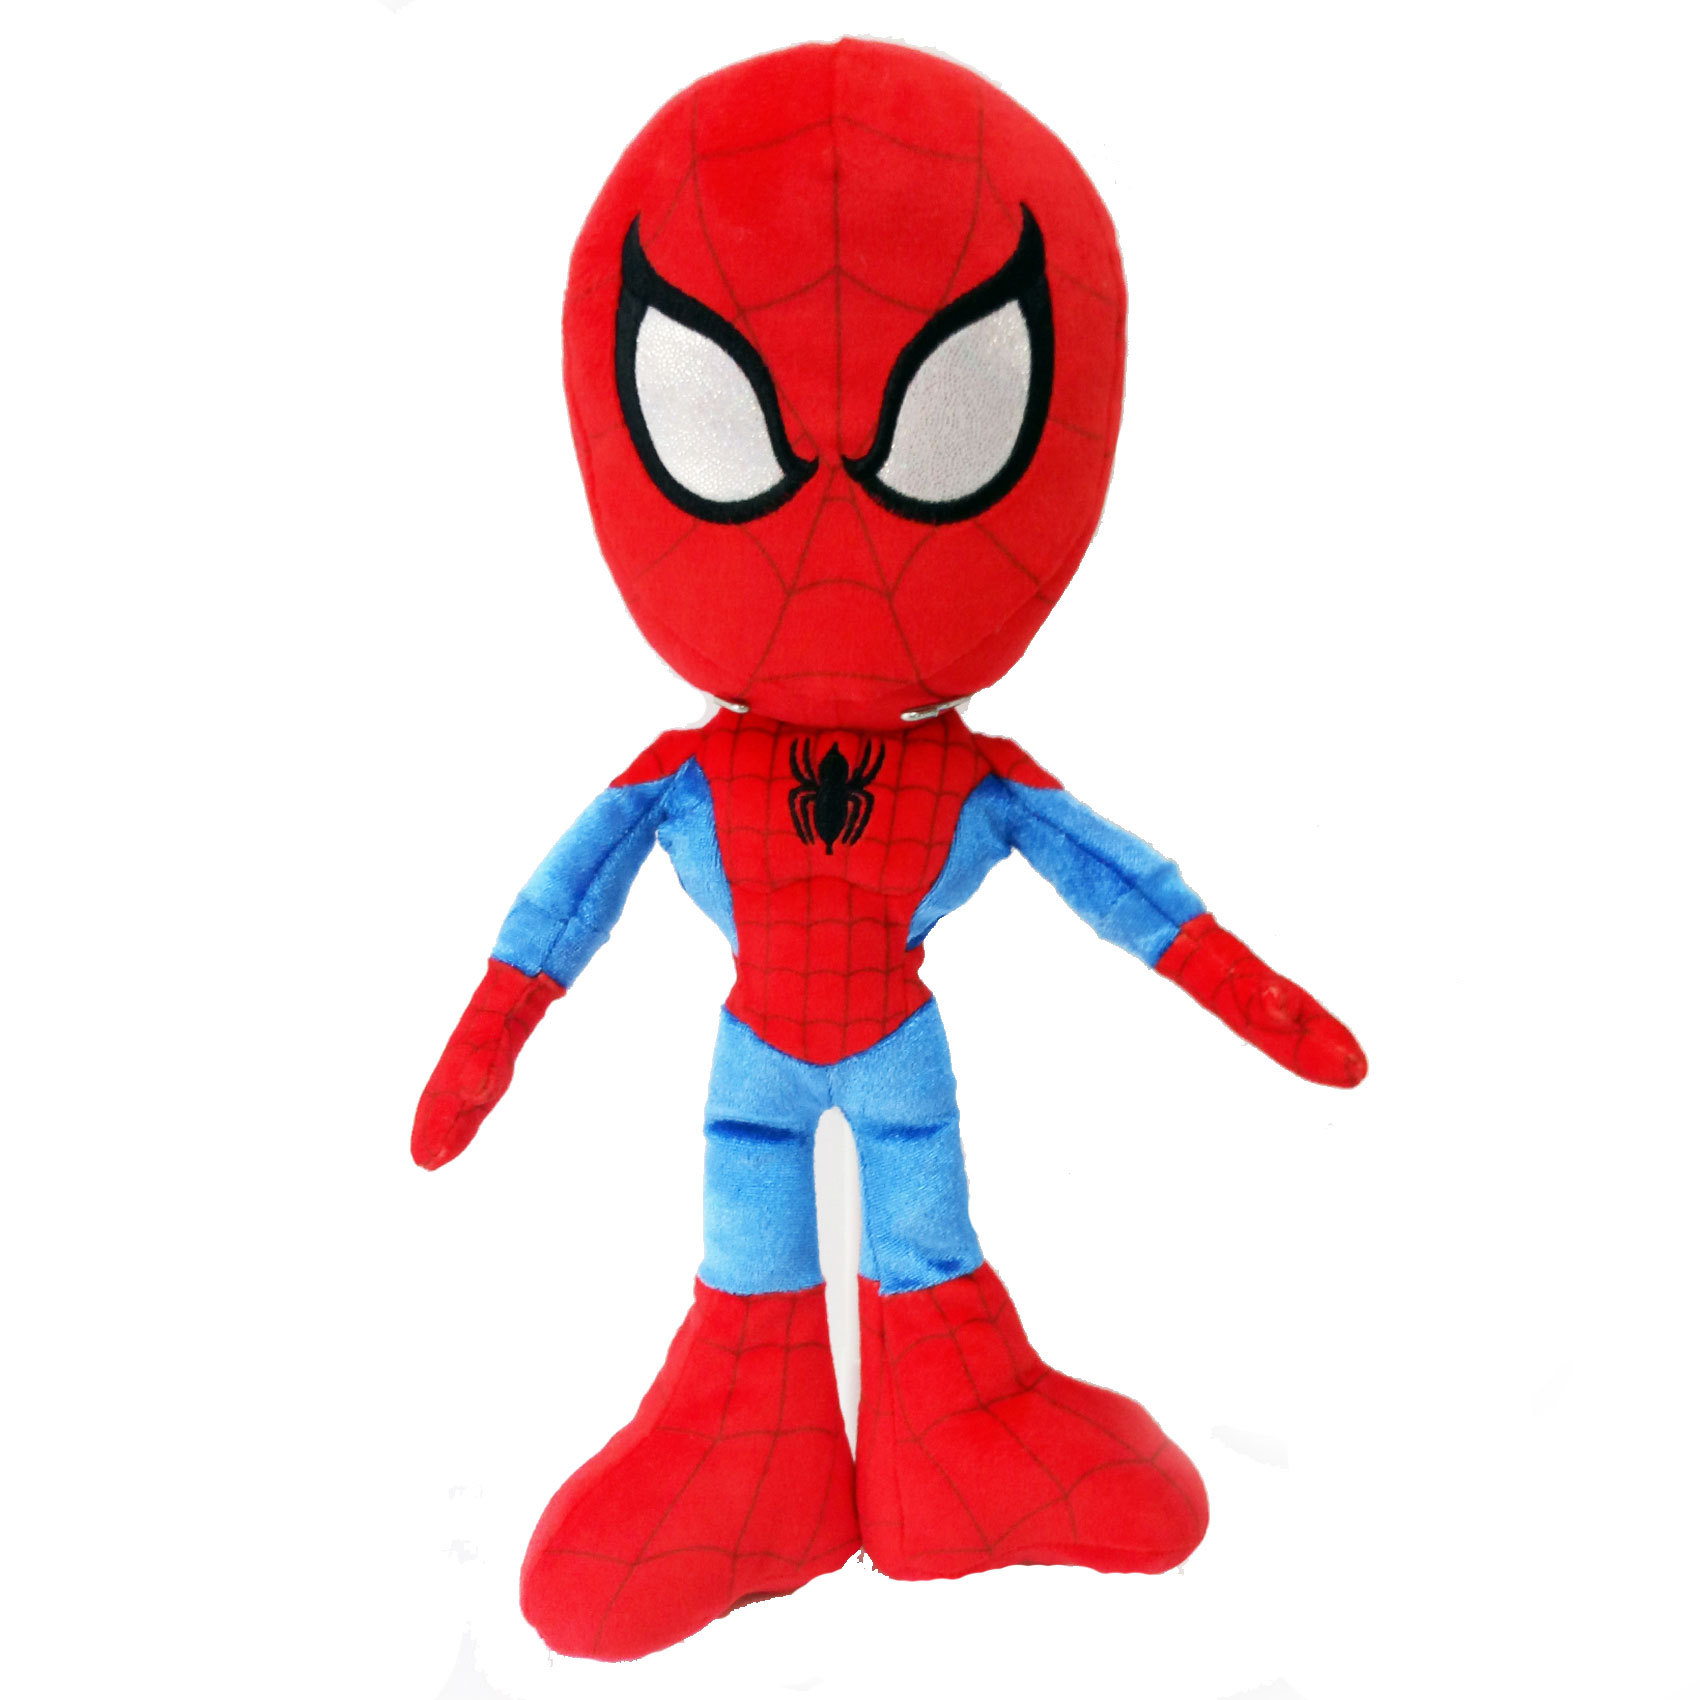 "Buy Marvel Plush Spiderman Action Figure 10"" Online in UAE ..."